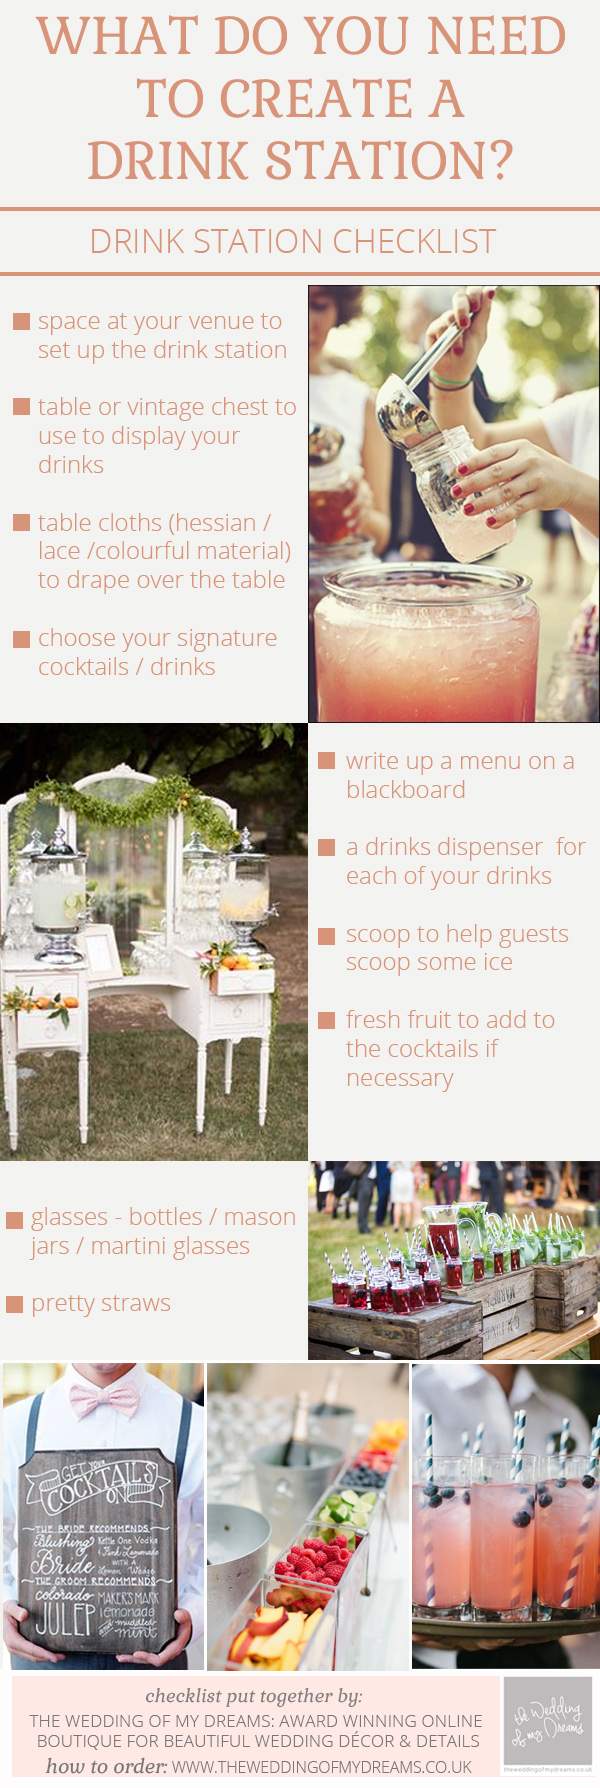 checklist for drink stations at weddings